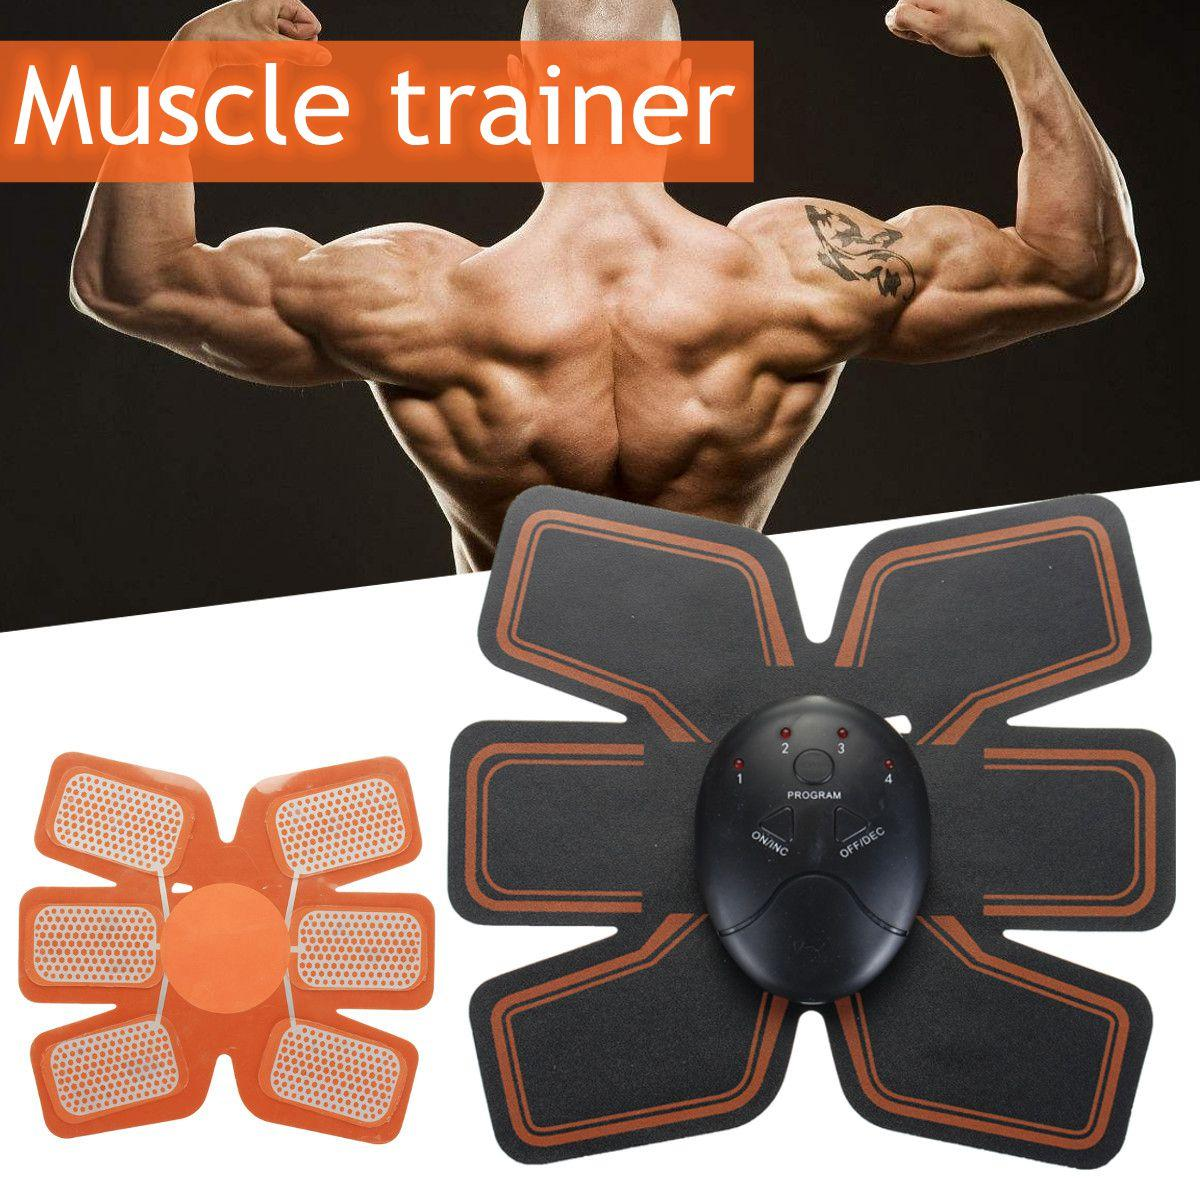 New Sports Electric Abdominal muscle Trainer body Massage Fit Training Exercise abdominal muscles Loss Slimming abdomen Massager electric abdominal muscle trainer body massage fit training exercise abdominal muscles loss slimming abdomen massager